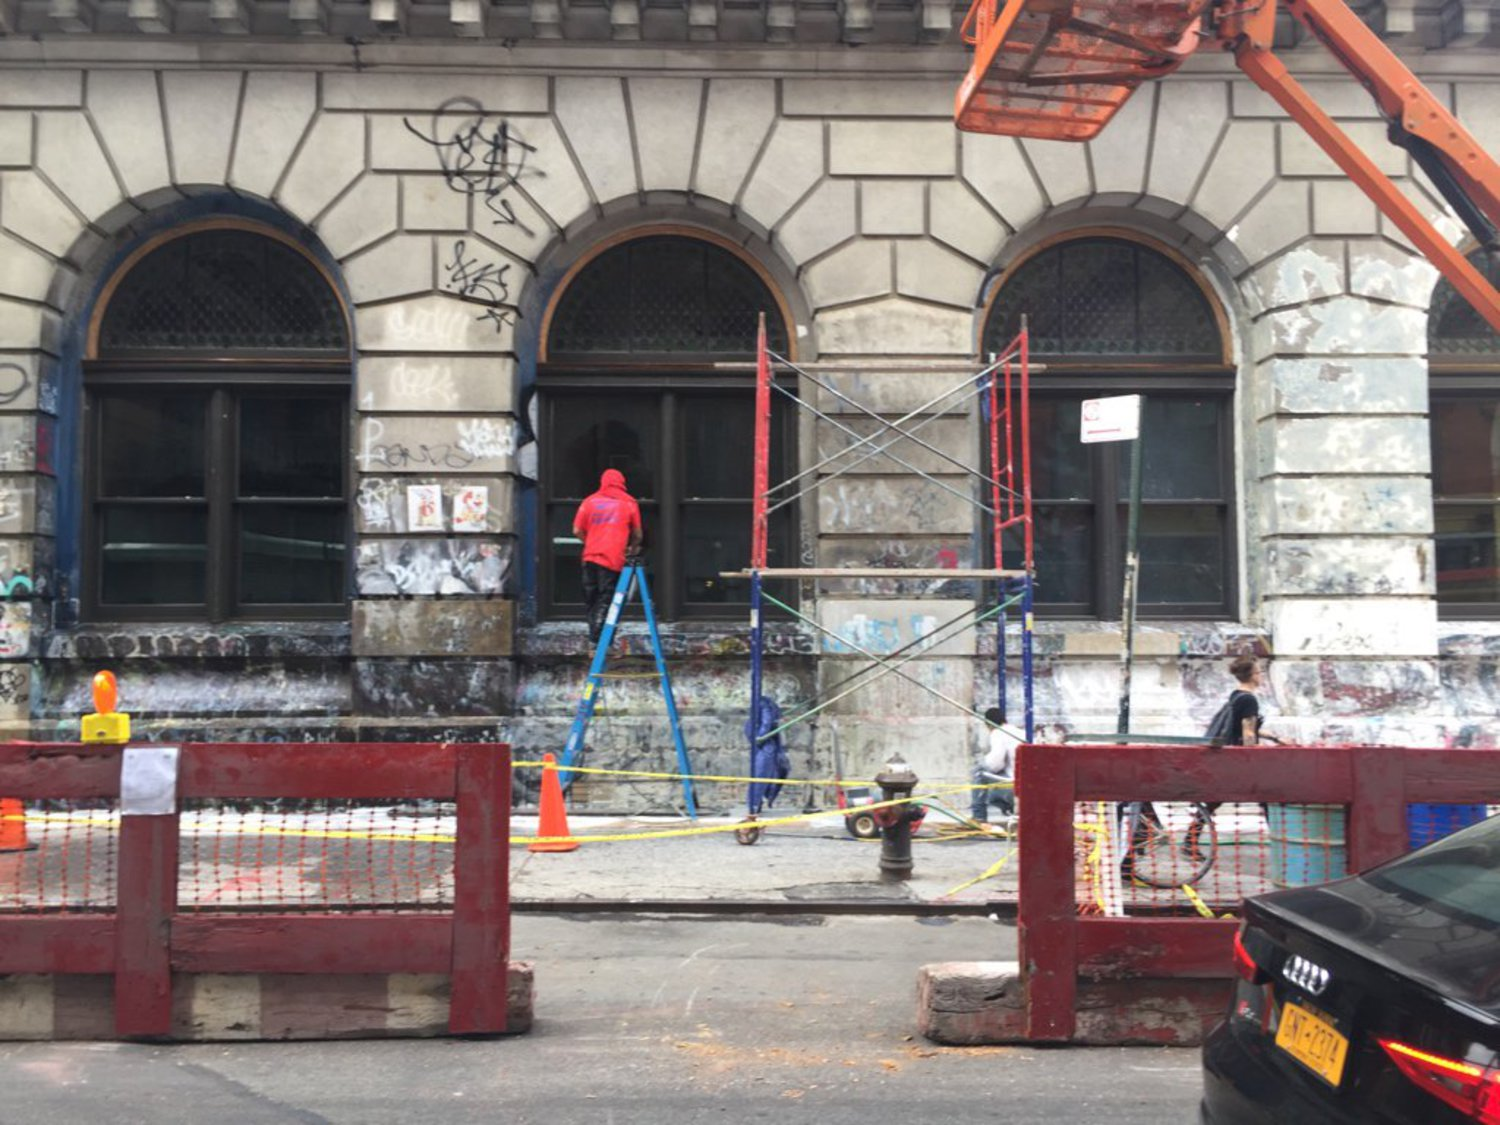 They're removing the graffiti from 190 Bowery.